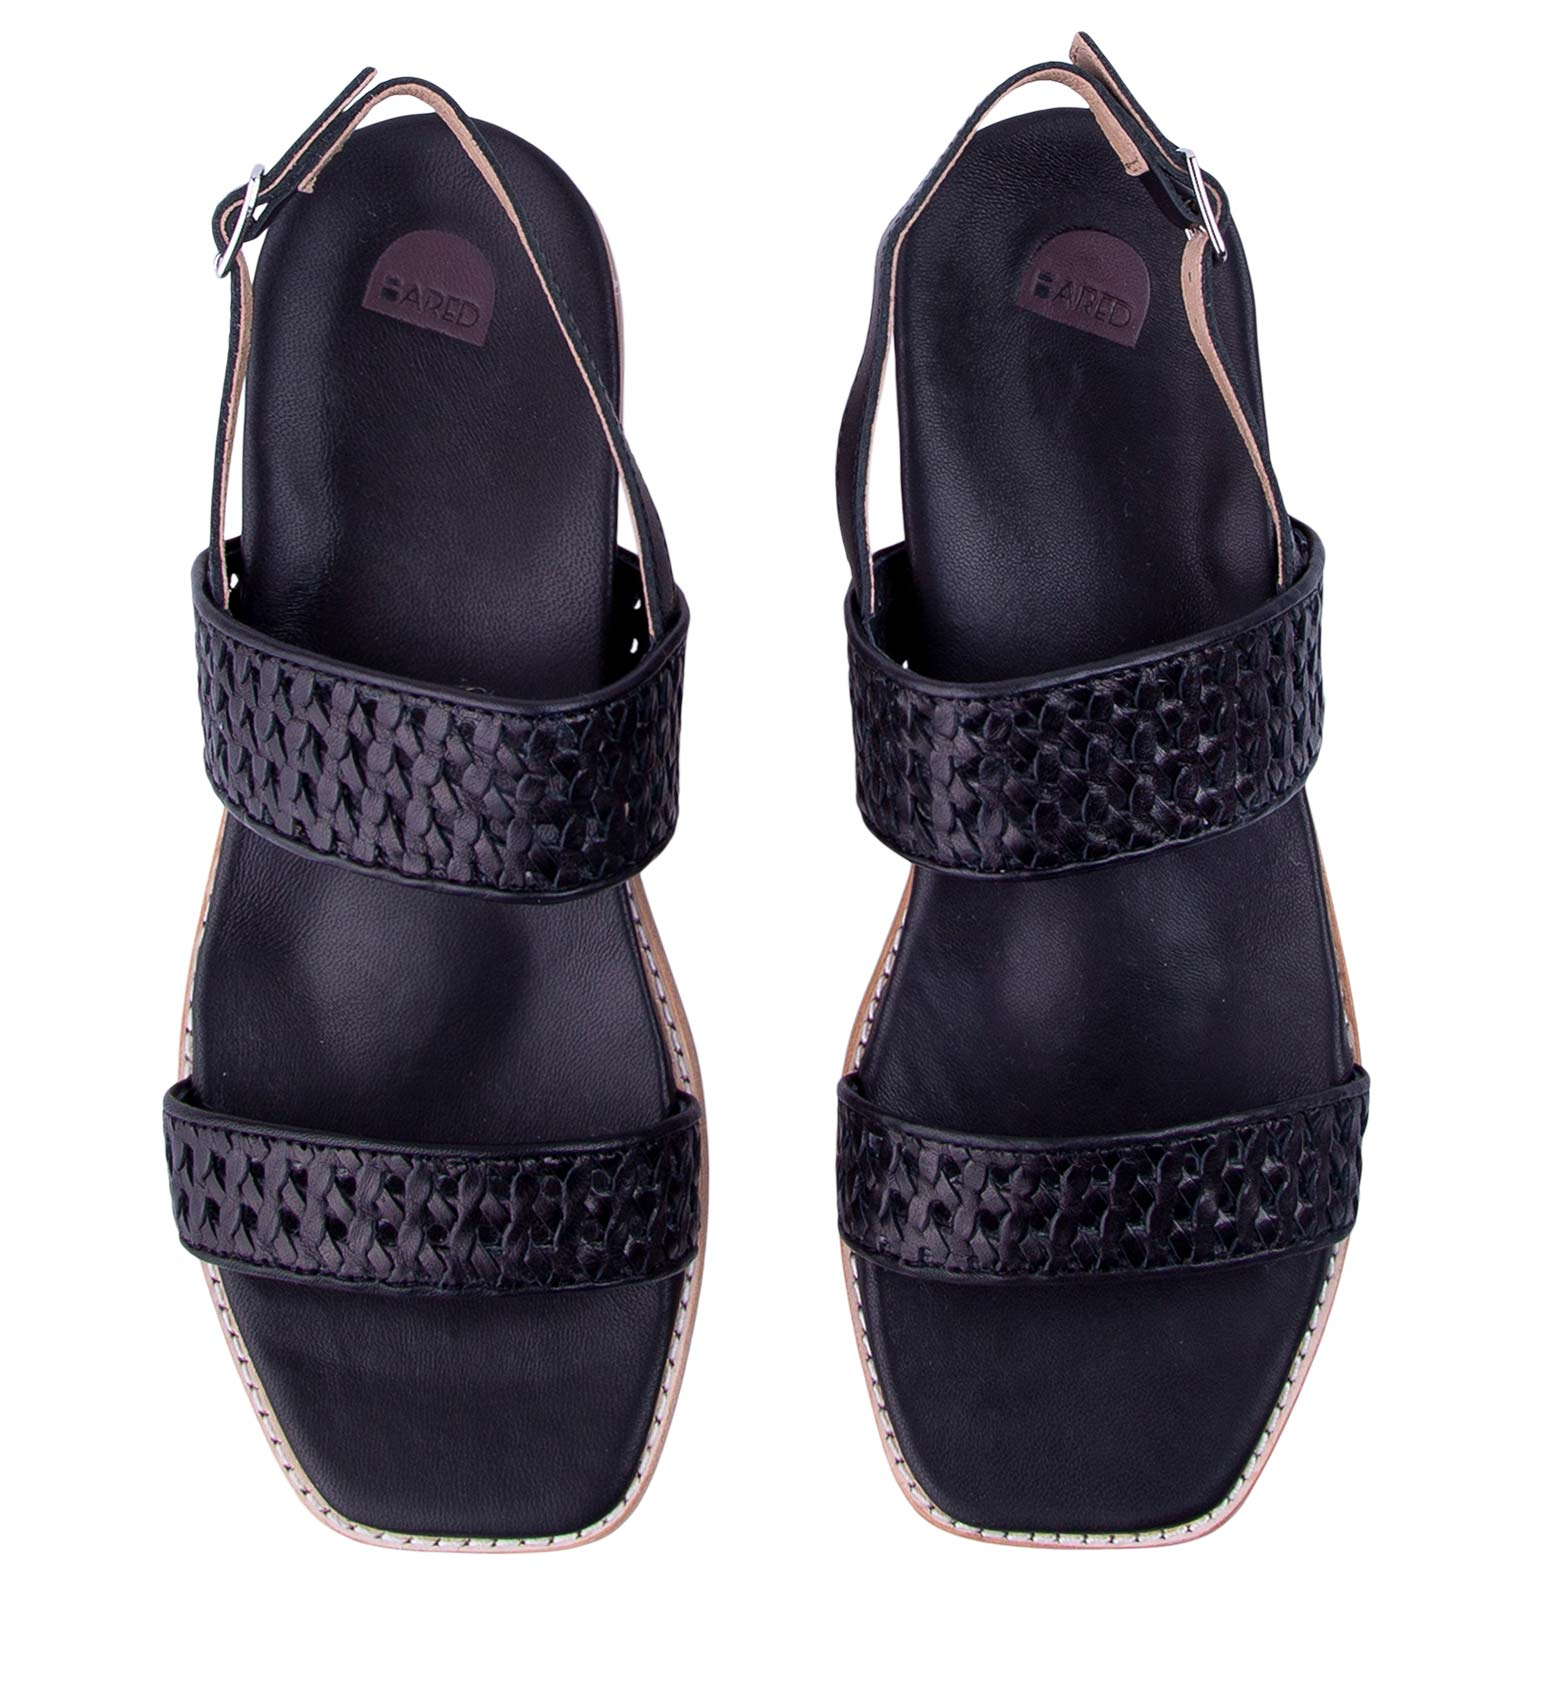 Bared Shoes: A revolution in footwear. Men's and women's